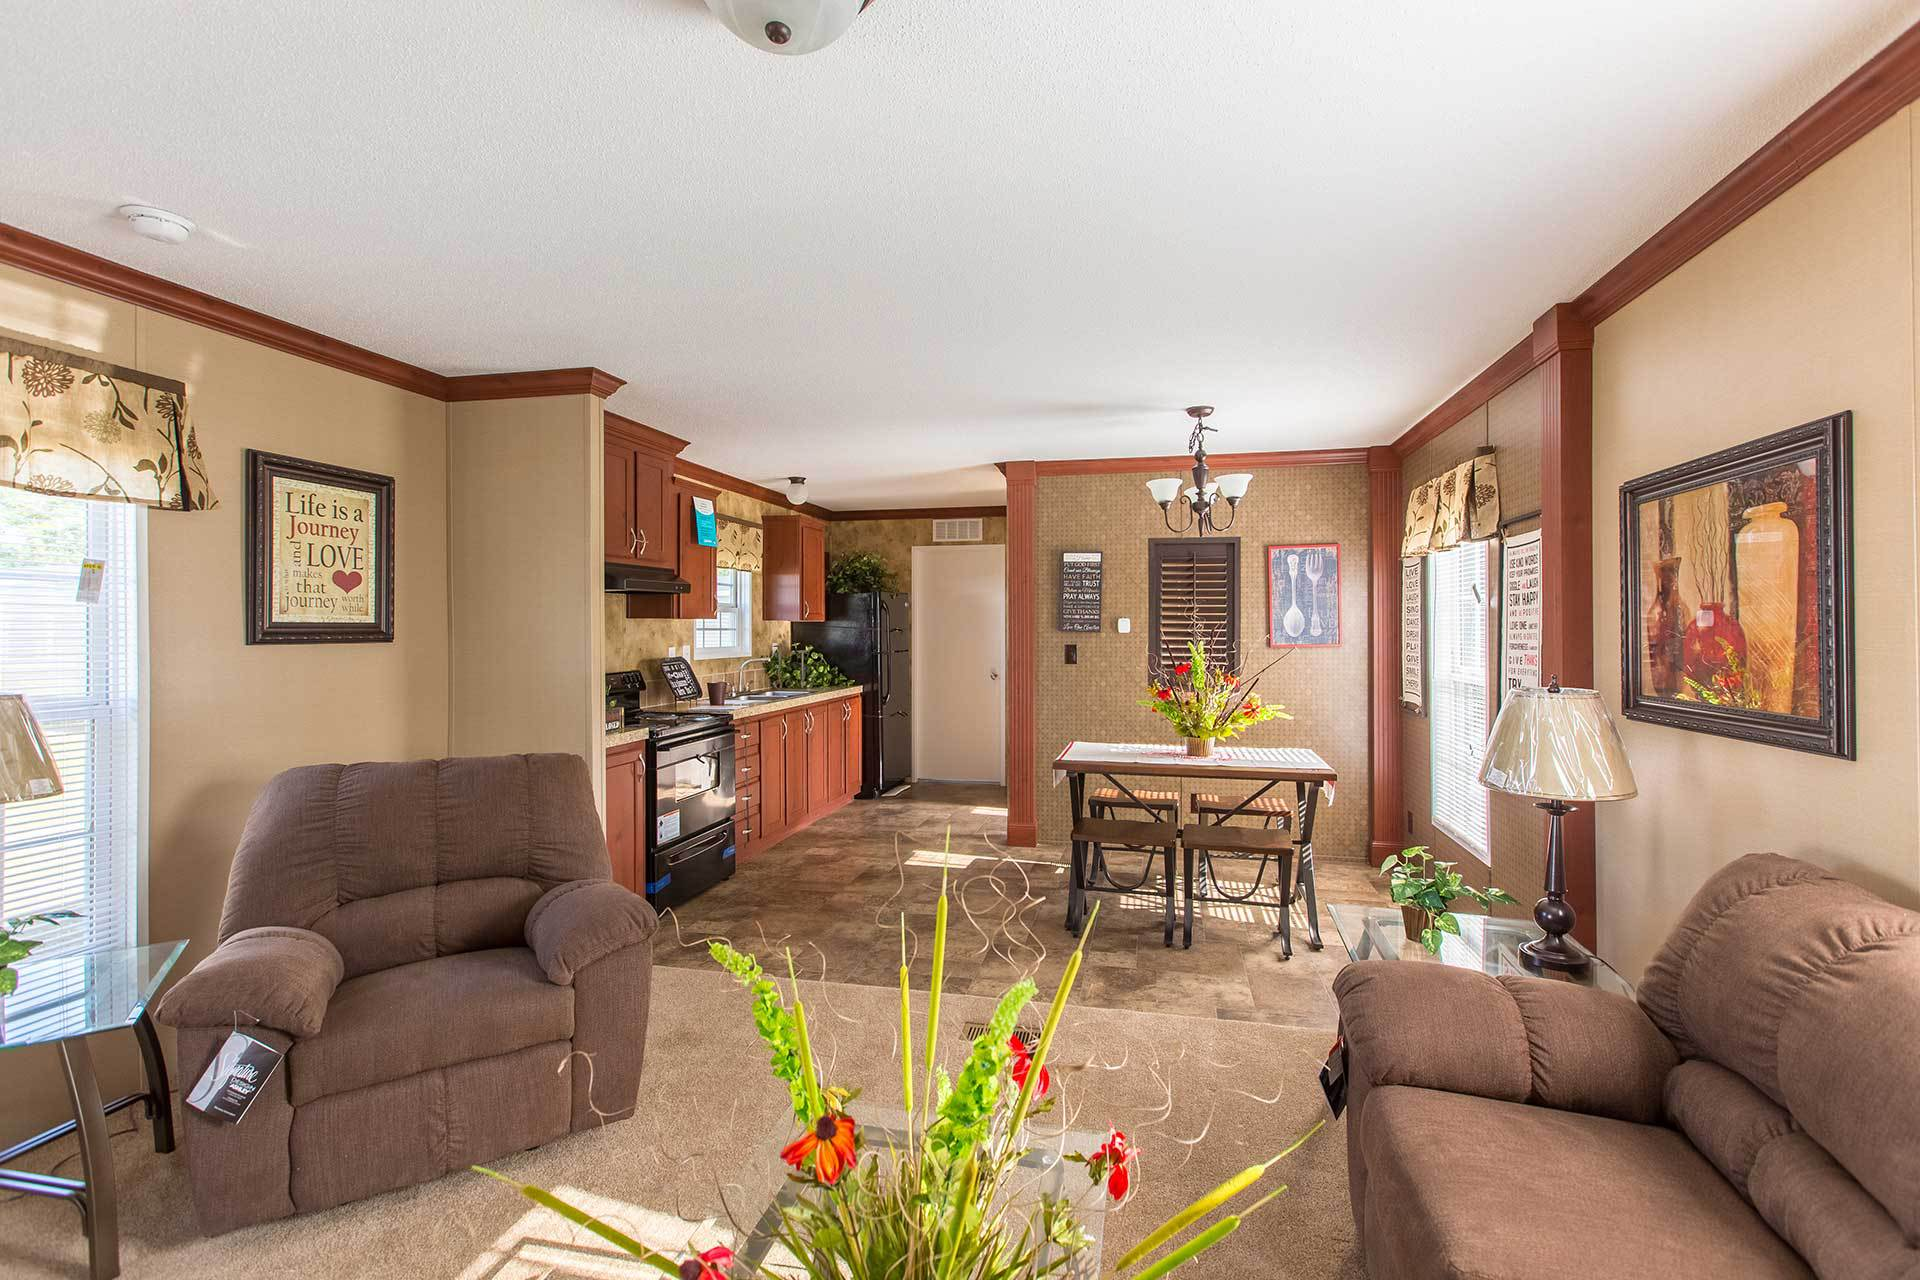 manufactured homes for sale - Fort Walton Beach, FL